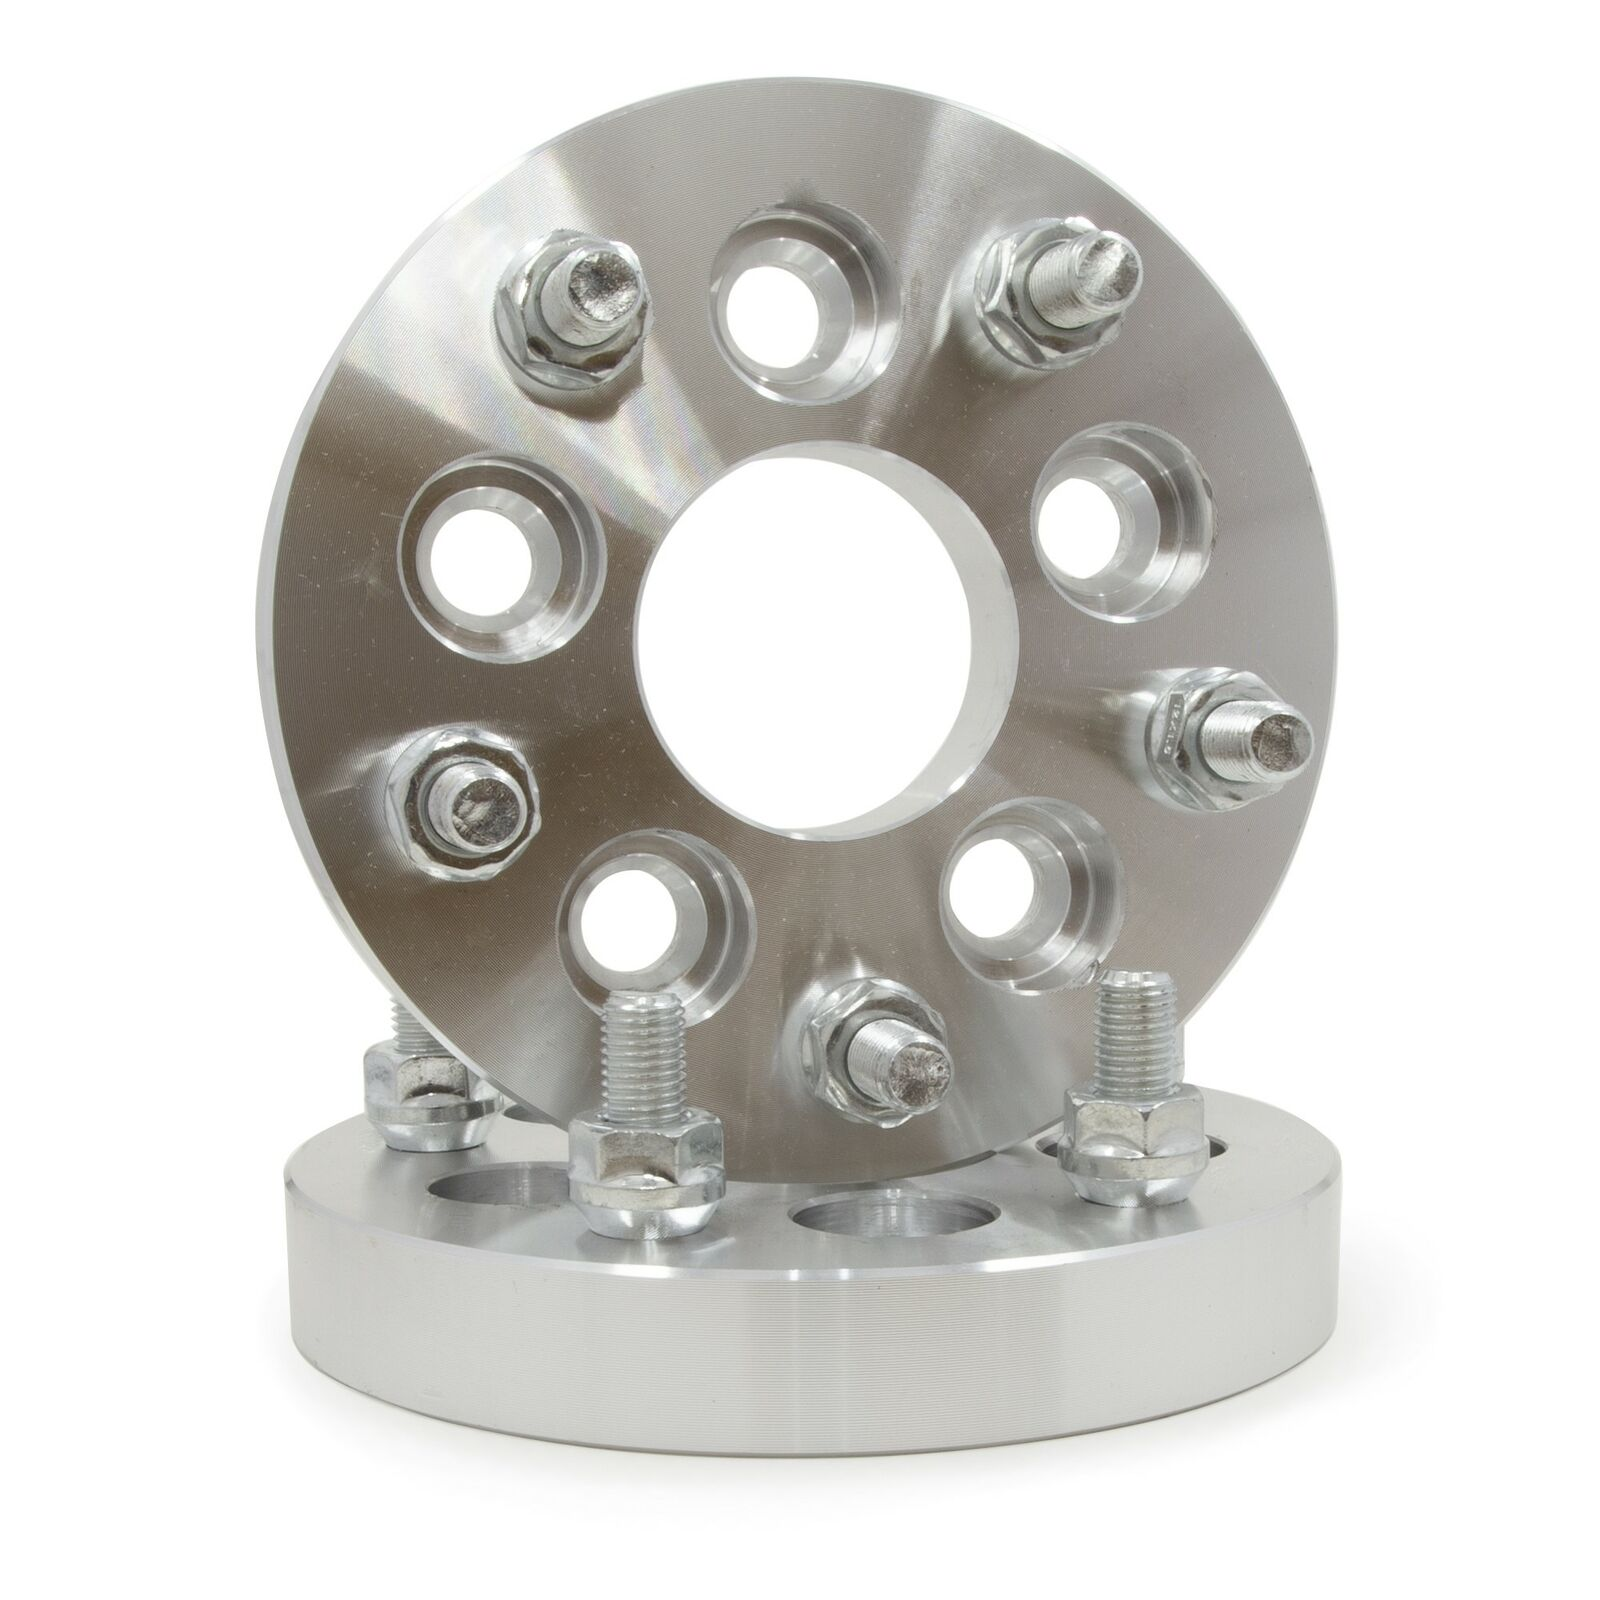 """4 JEEP WHEEL SPACERS ADAPTERS5X4.51/"""" INCH THICK25MM1//2/""""x20 LUGNUTS"""